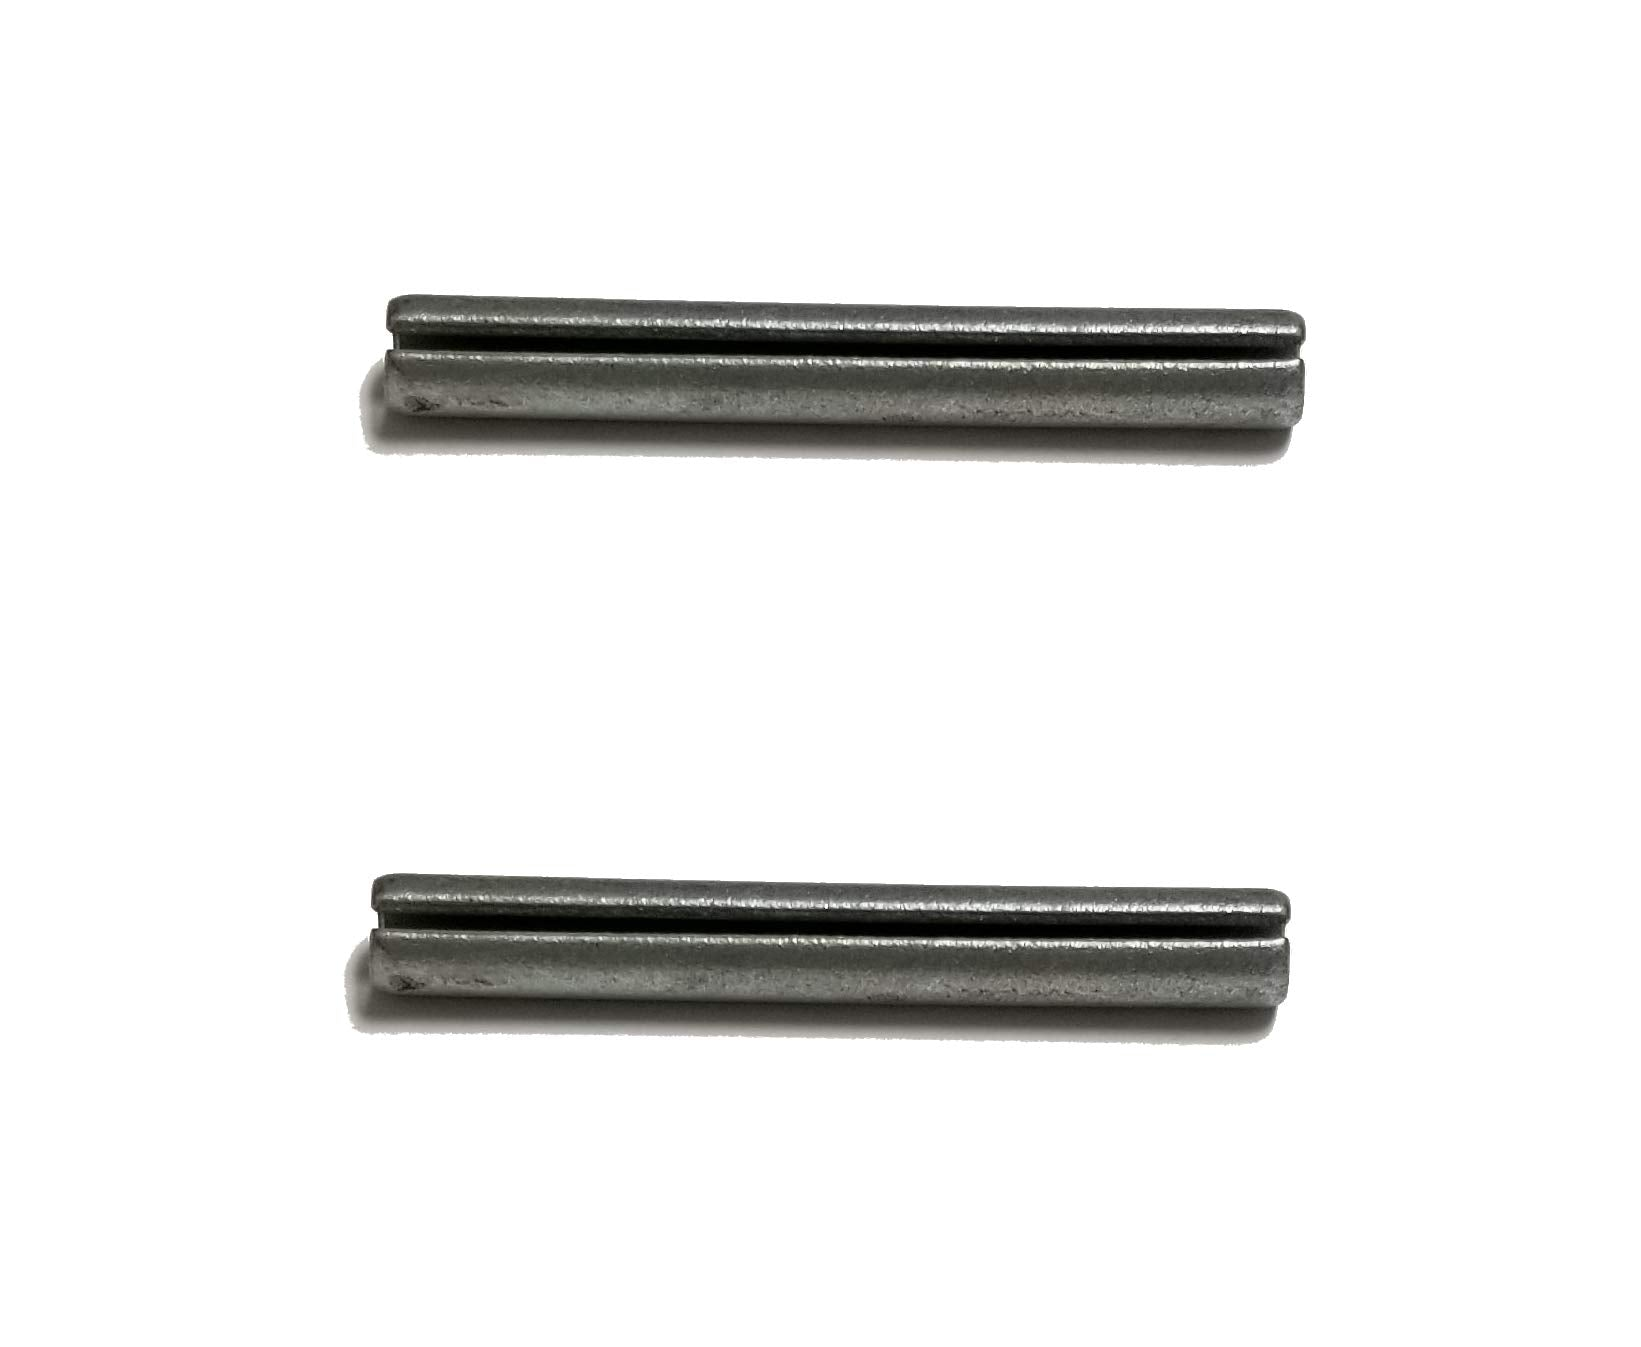 John Deere Original Equipment Spring Pin (2 Pack) - 34H386